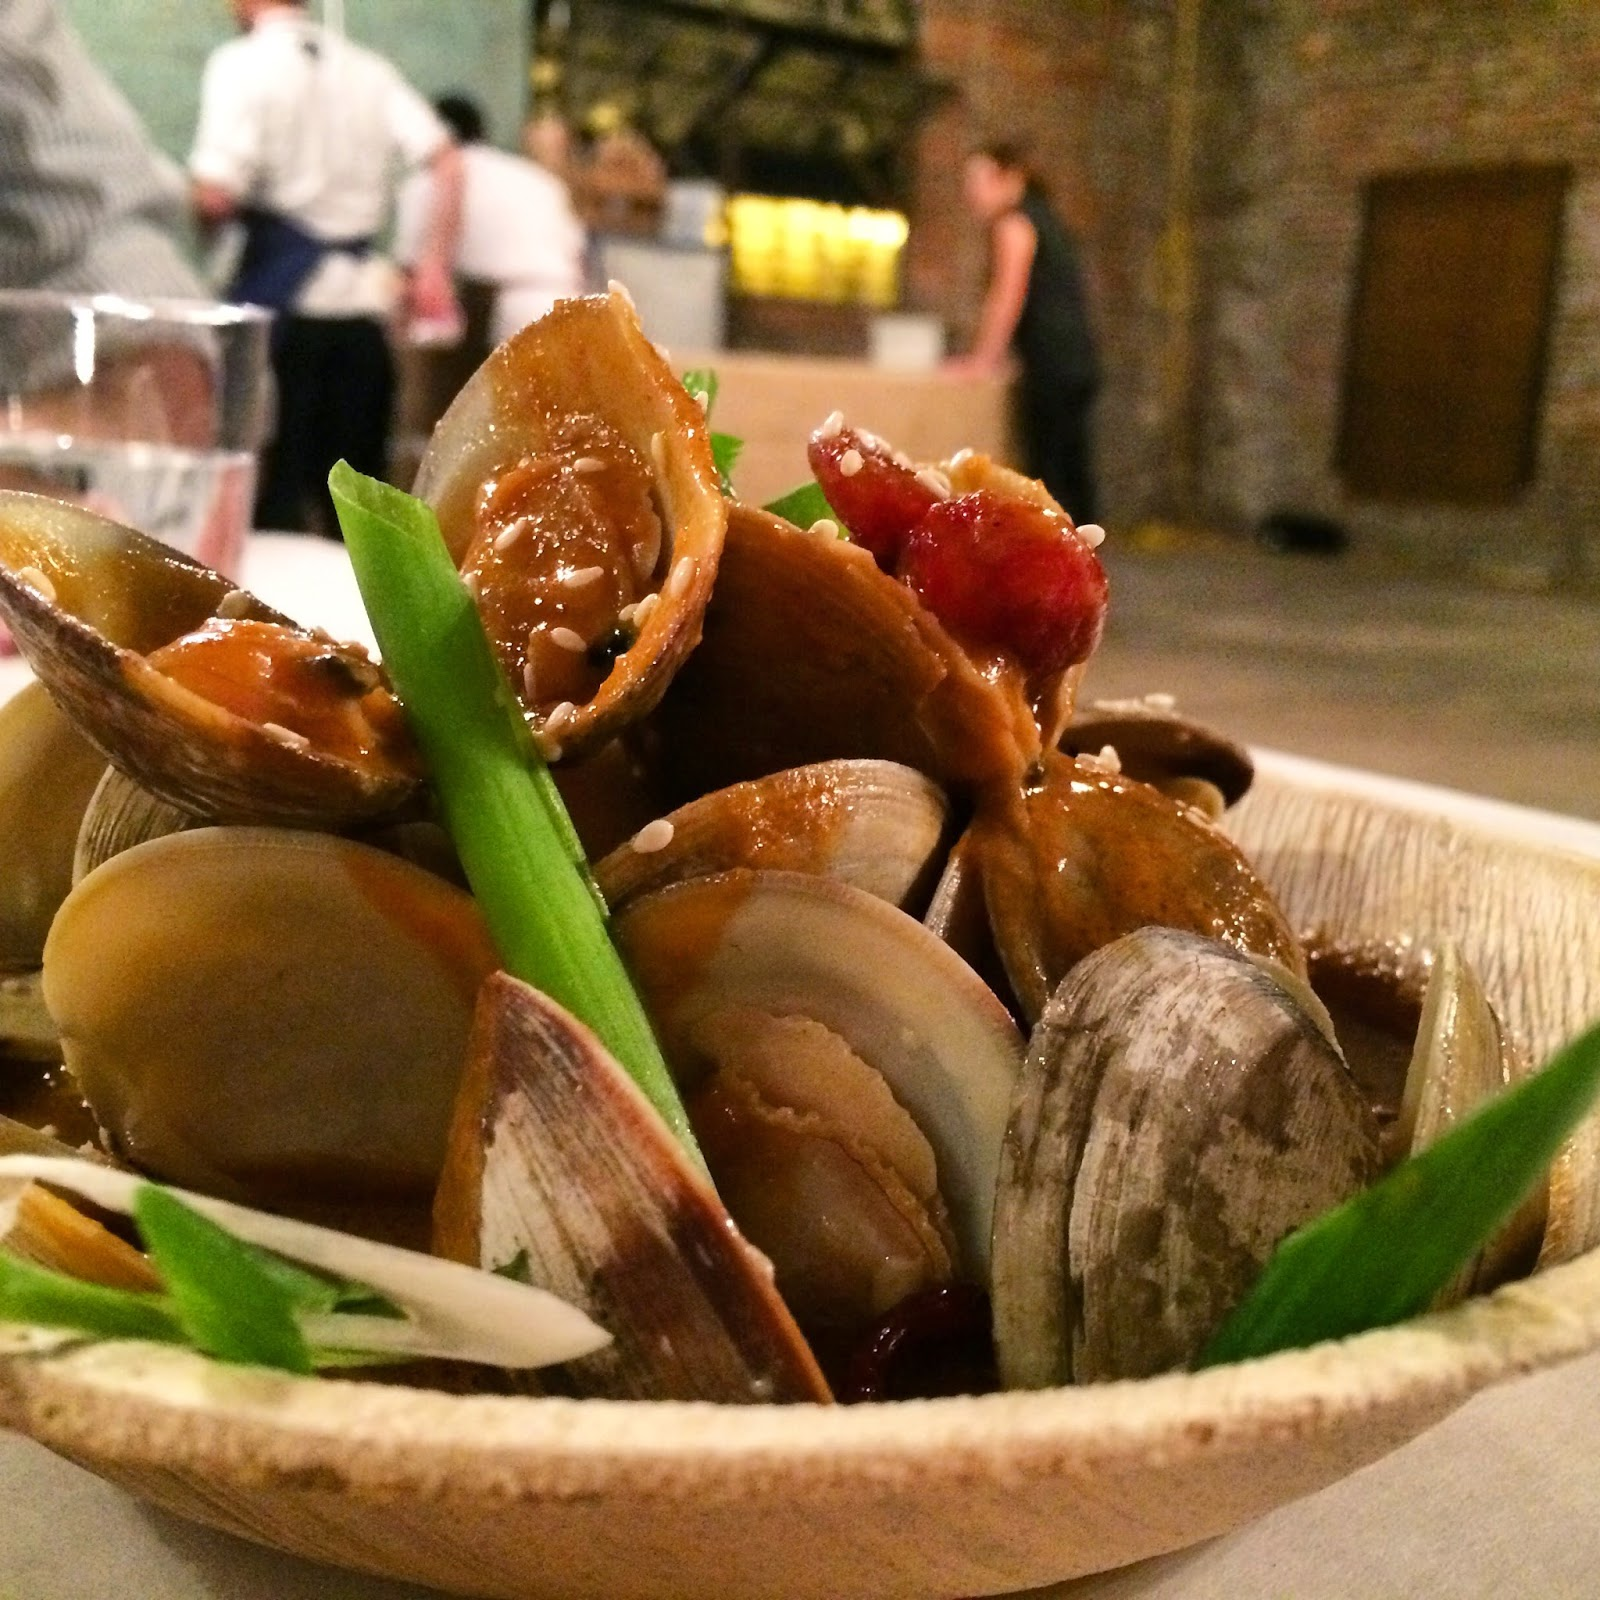 Second Course: Red Chili Littleneck Clams with Chinese Sausage and Green Onion